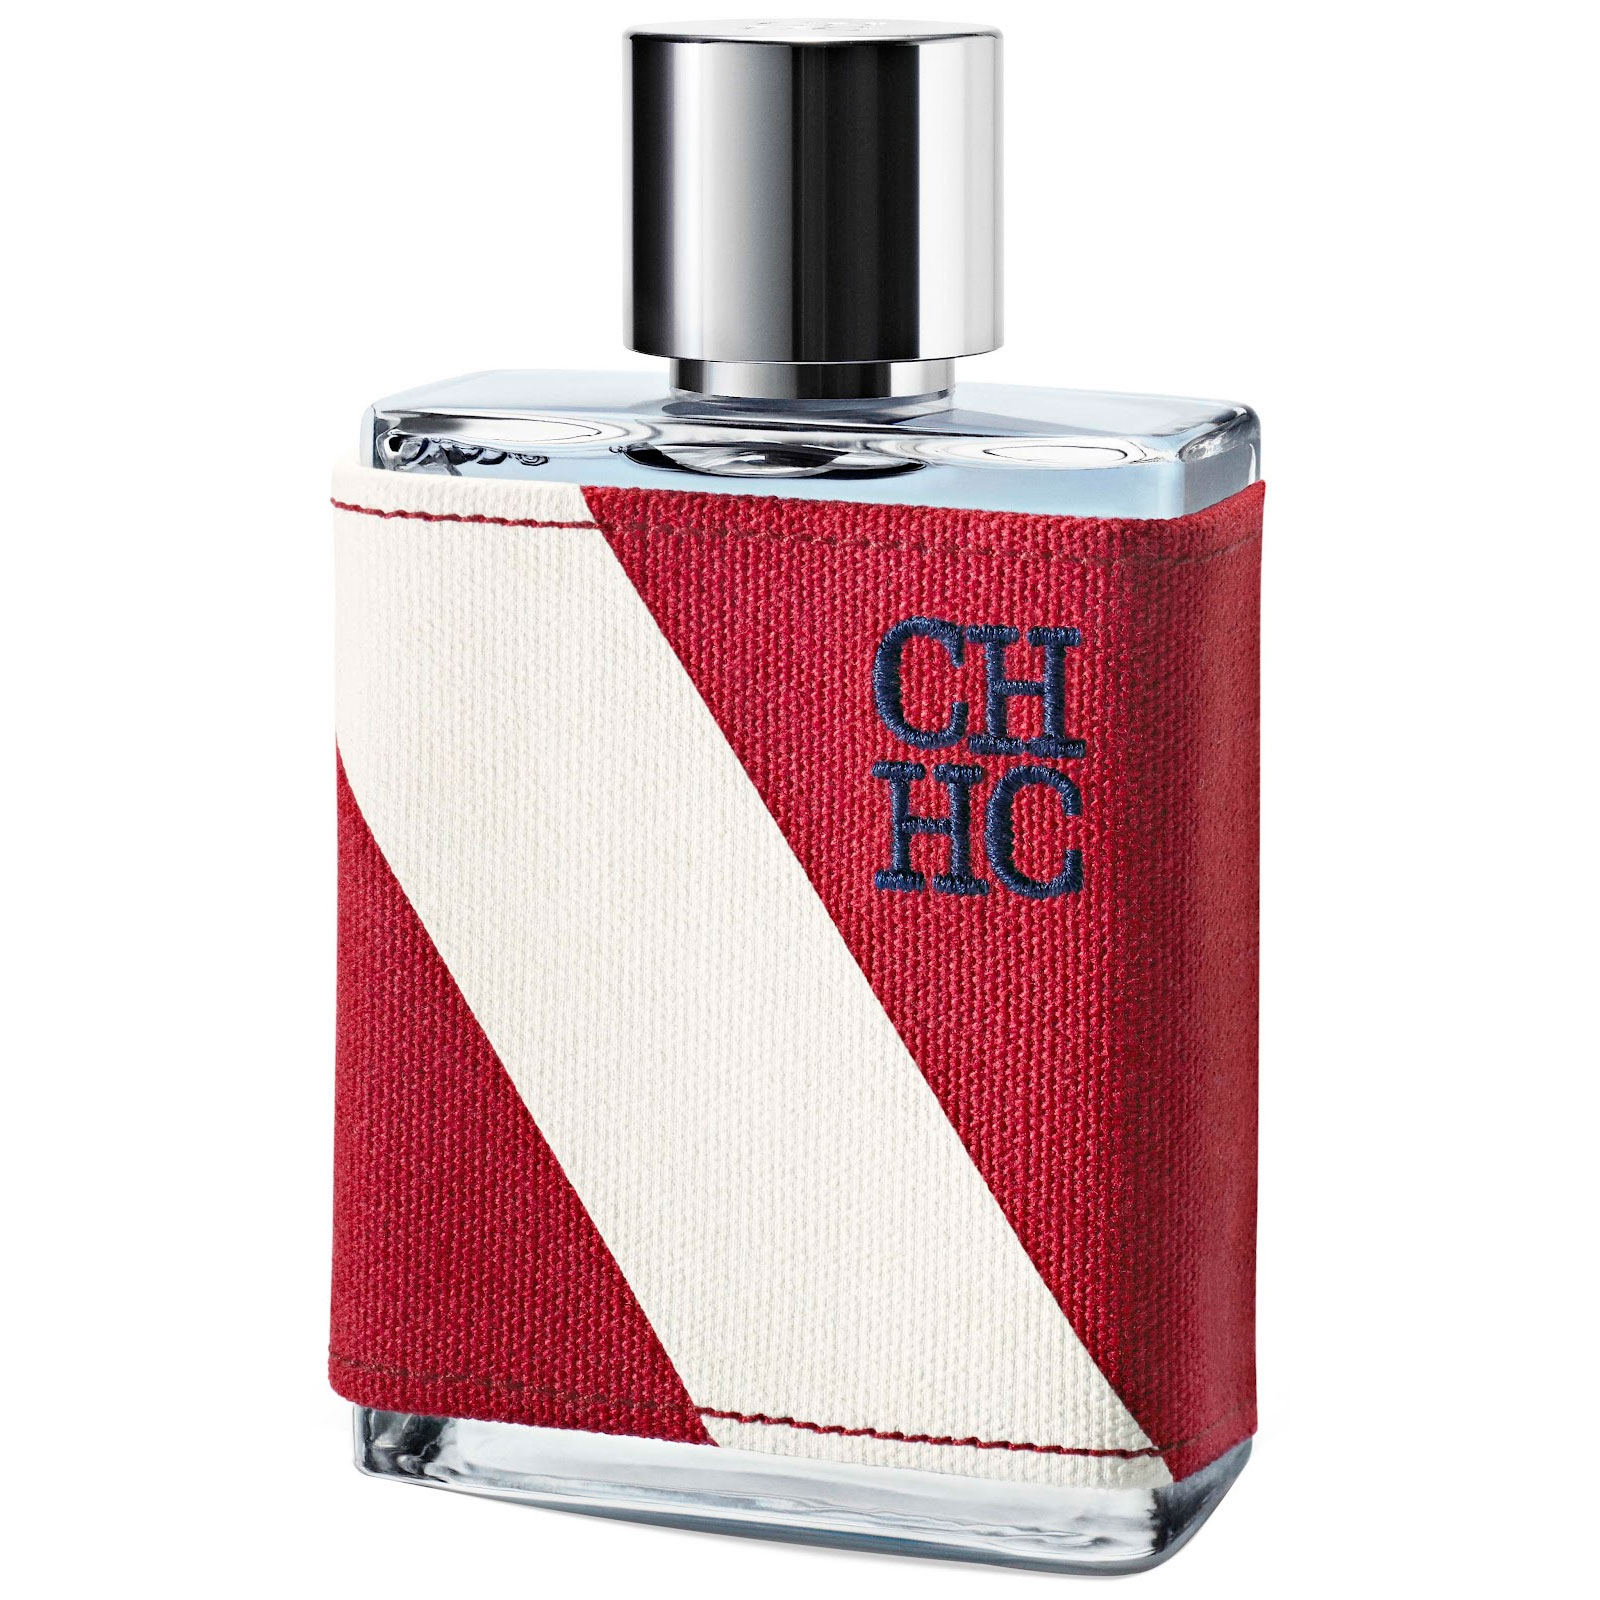 Carolina Herrera CH Men Sport 100 ml eau de toilette spray